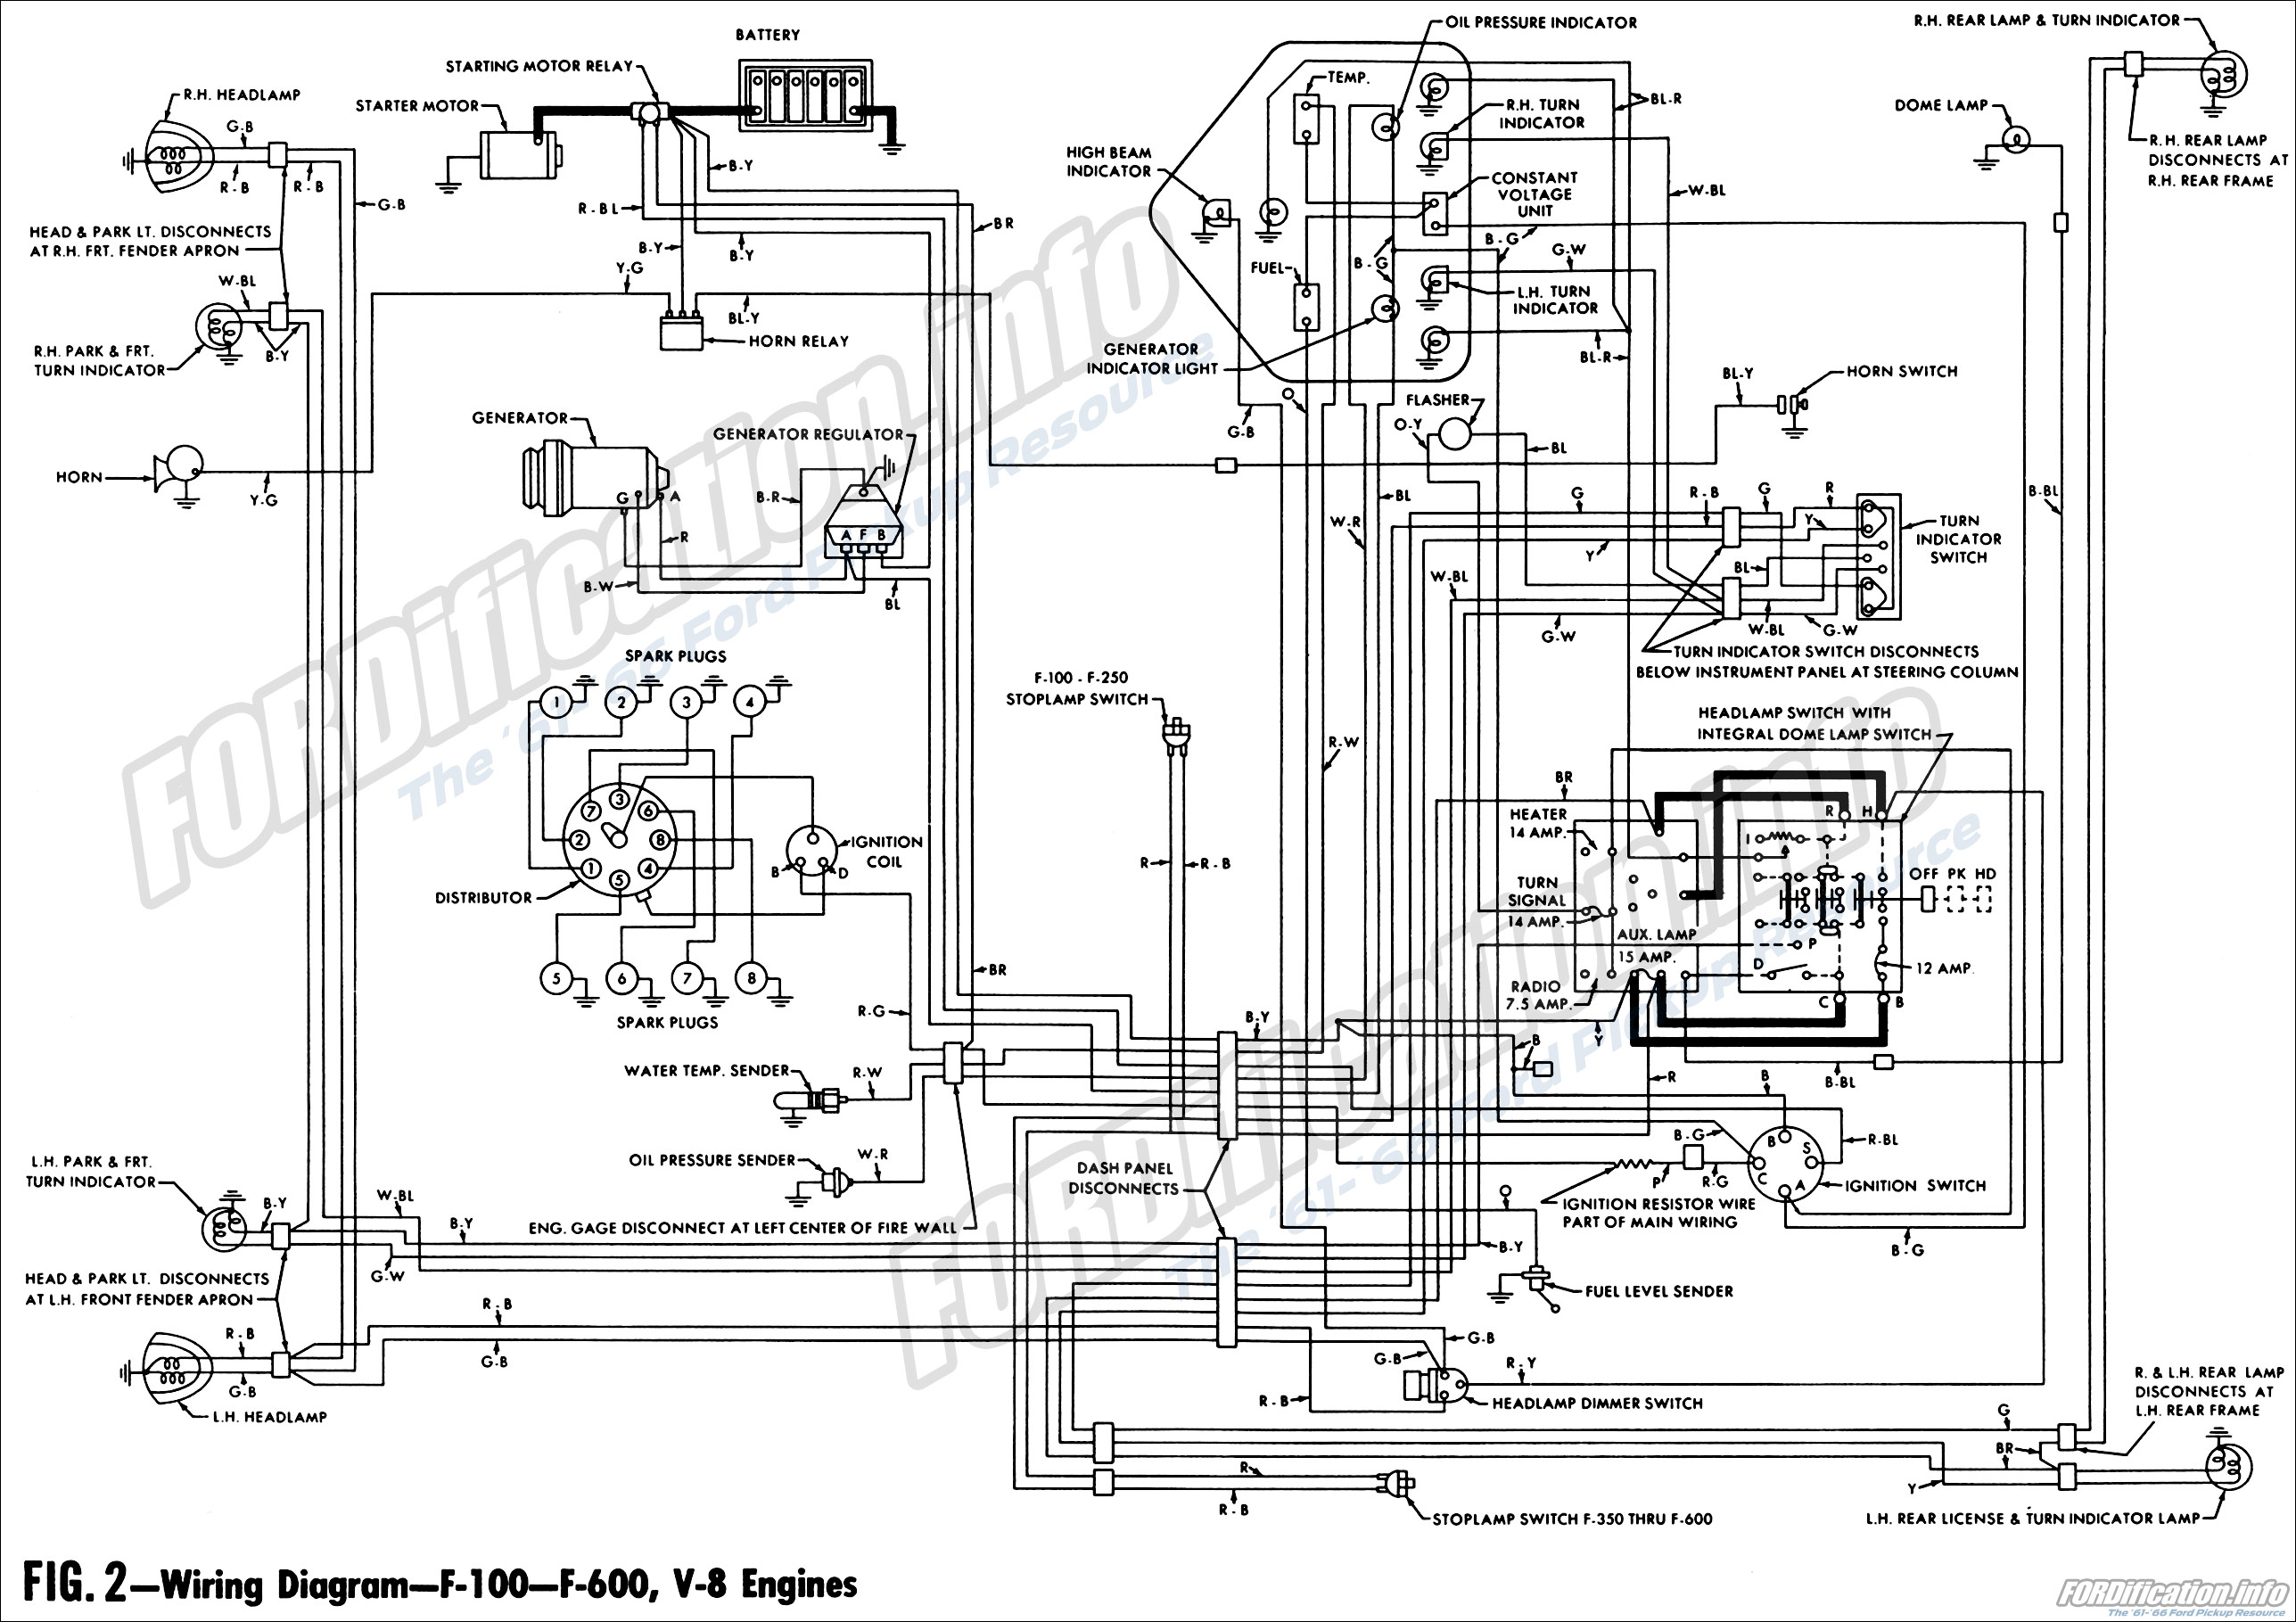 2009 2010 ford f650 f750 medium truck wiring diagram manual original